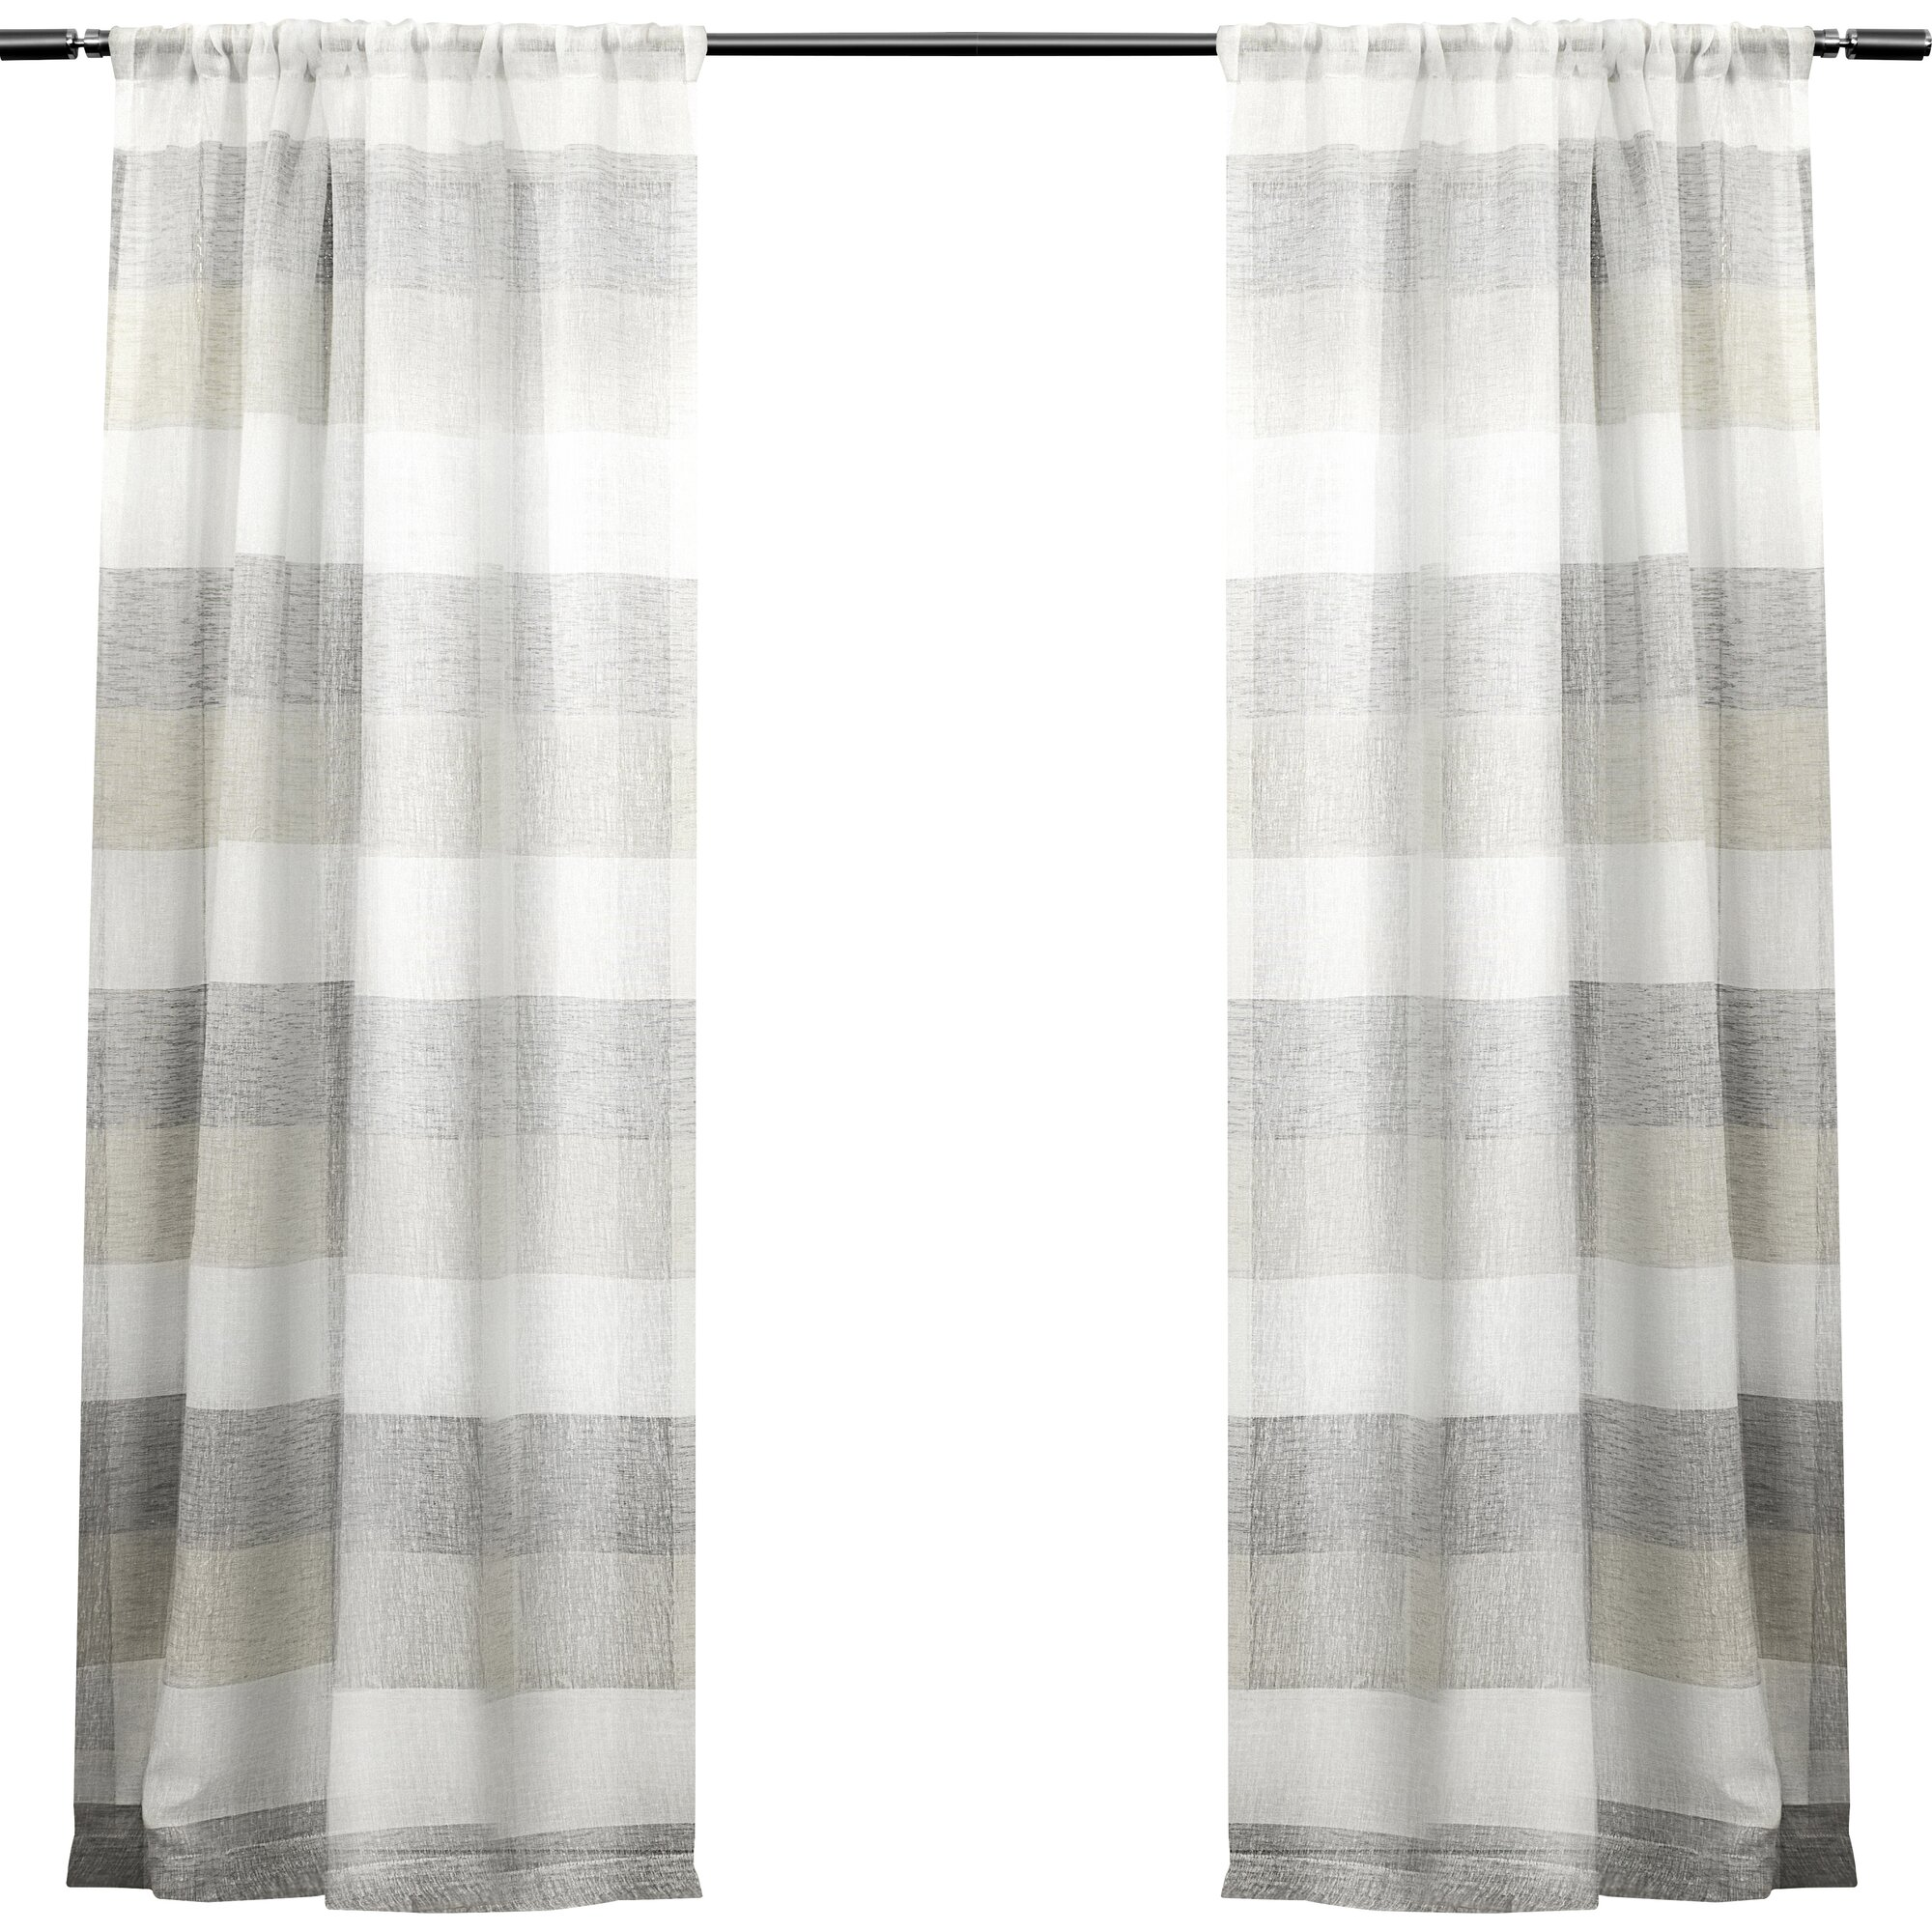 curtain ideas curtains org panels instacurtainss window design us avarii best nautica home